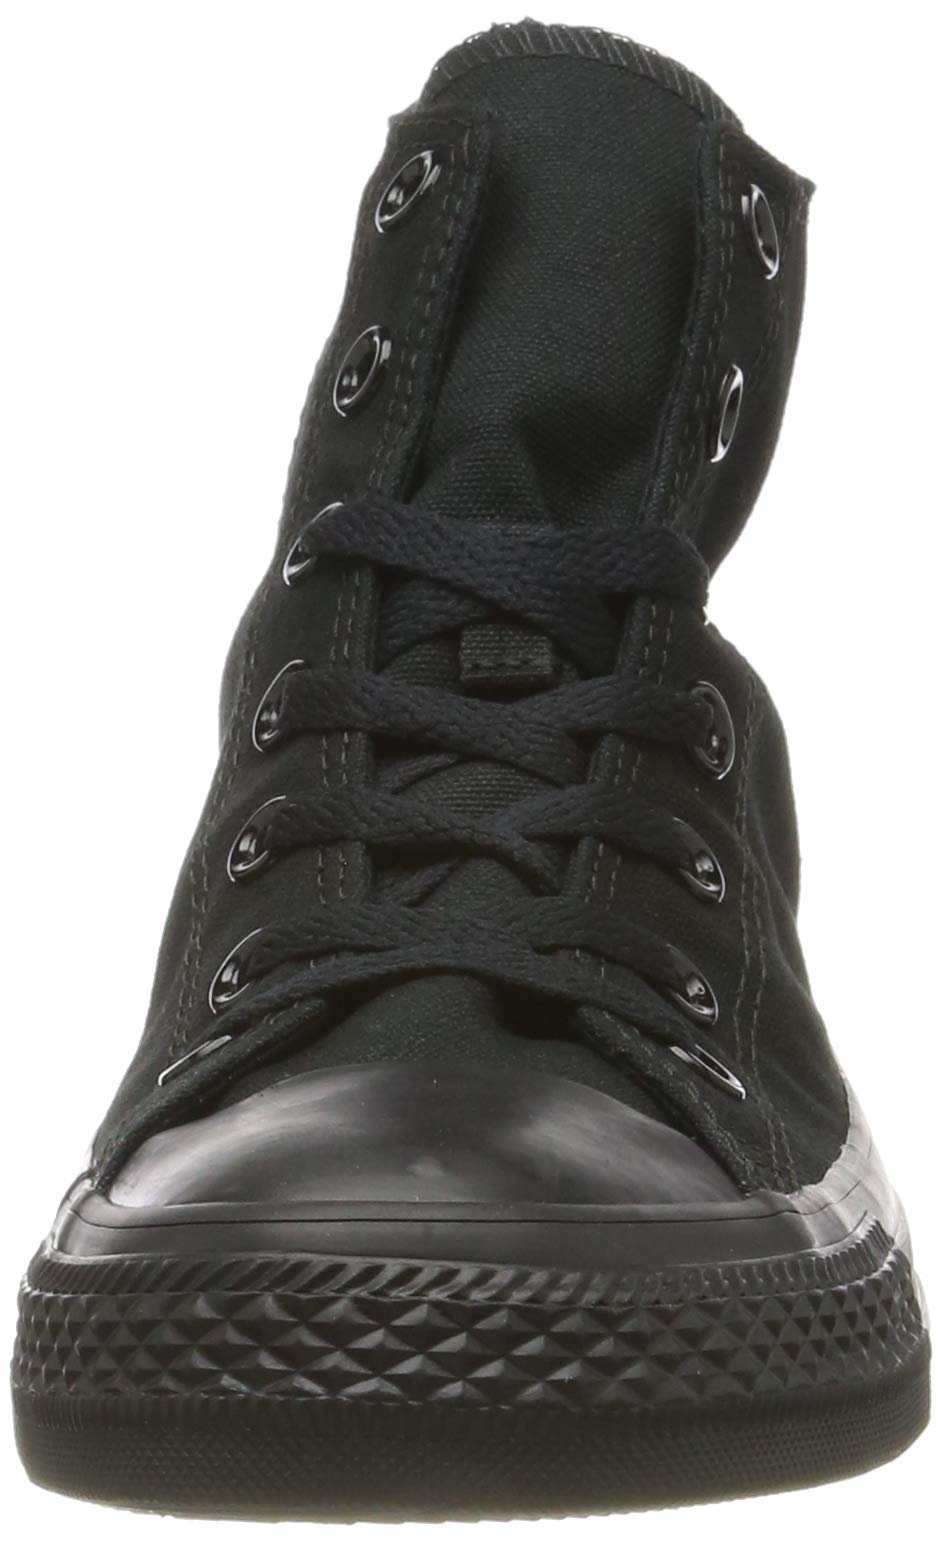 Converse M9160: Chuck Taylor All Star High Top Unisex Black White Sneakers by Converse (Image #4)